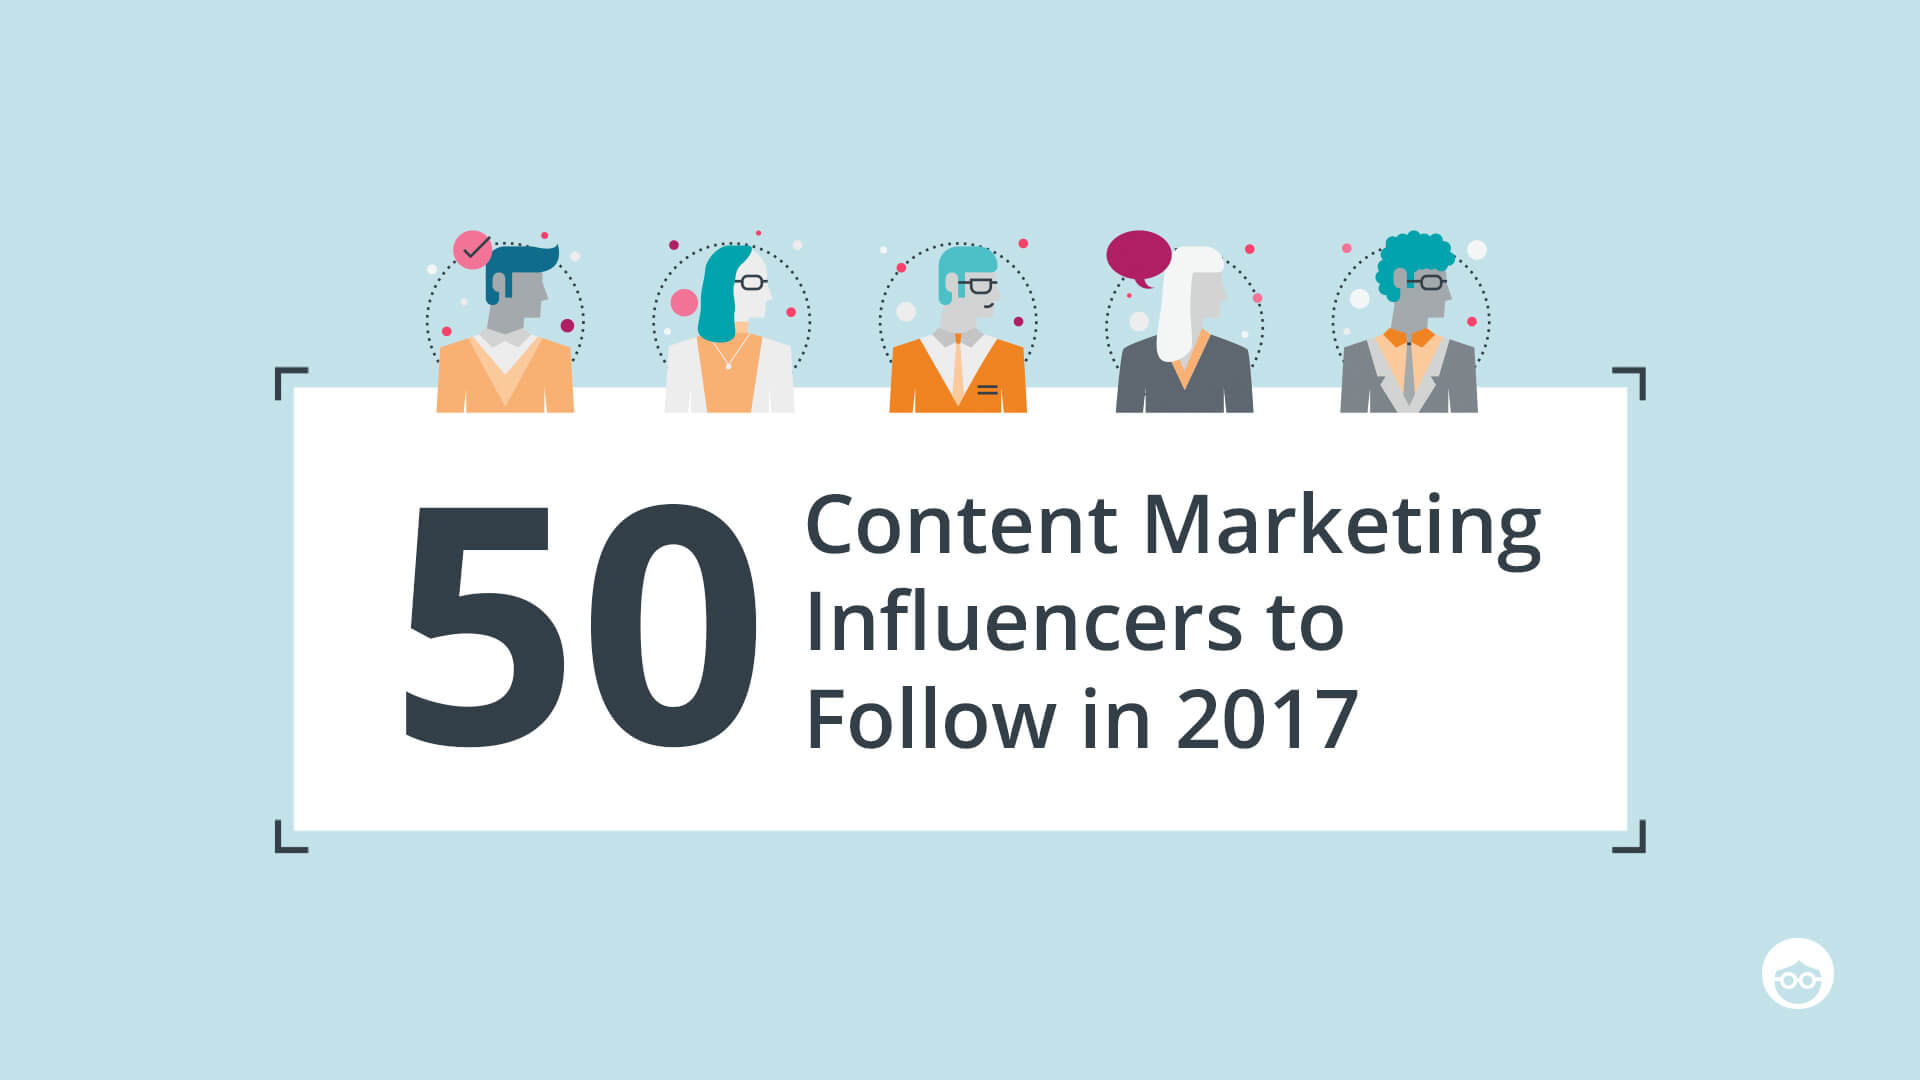 50 Content Marketing Influencers to Follow in 2017